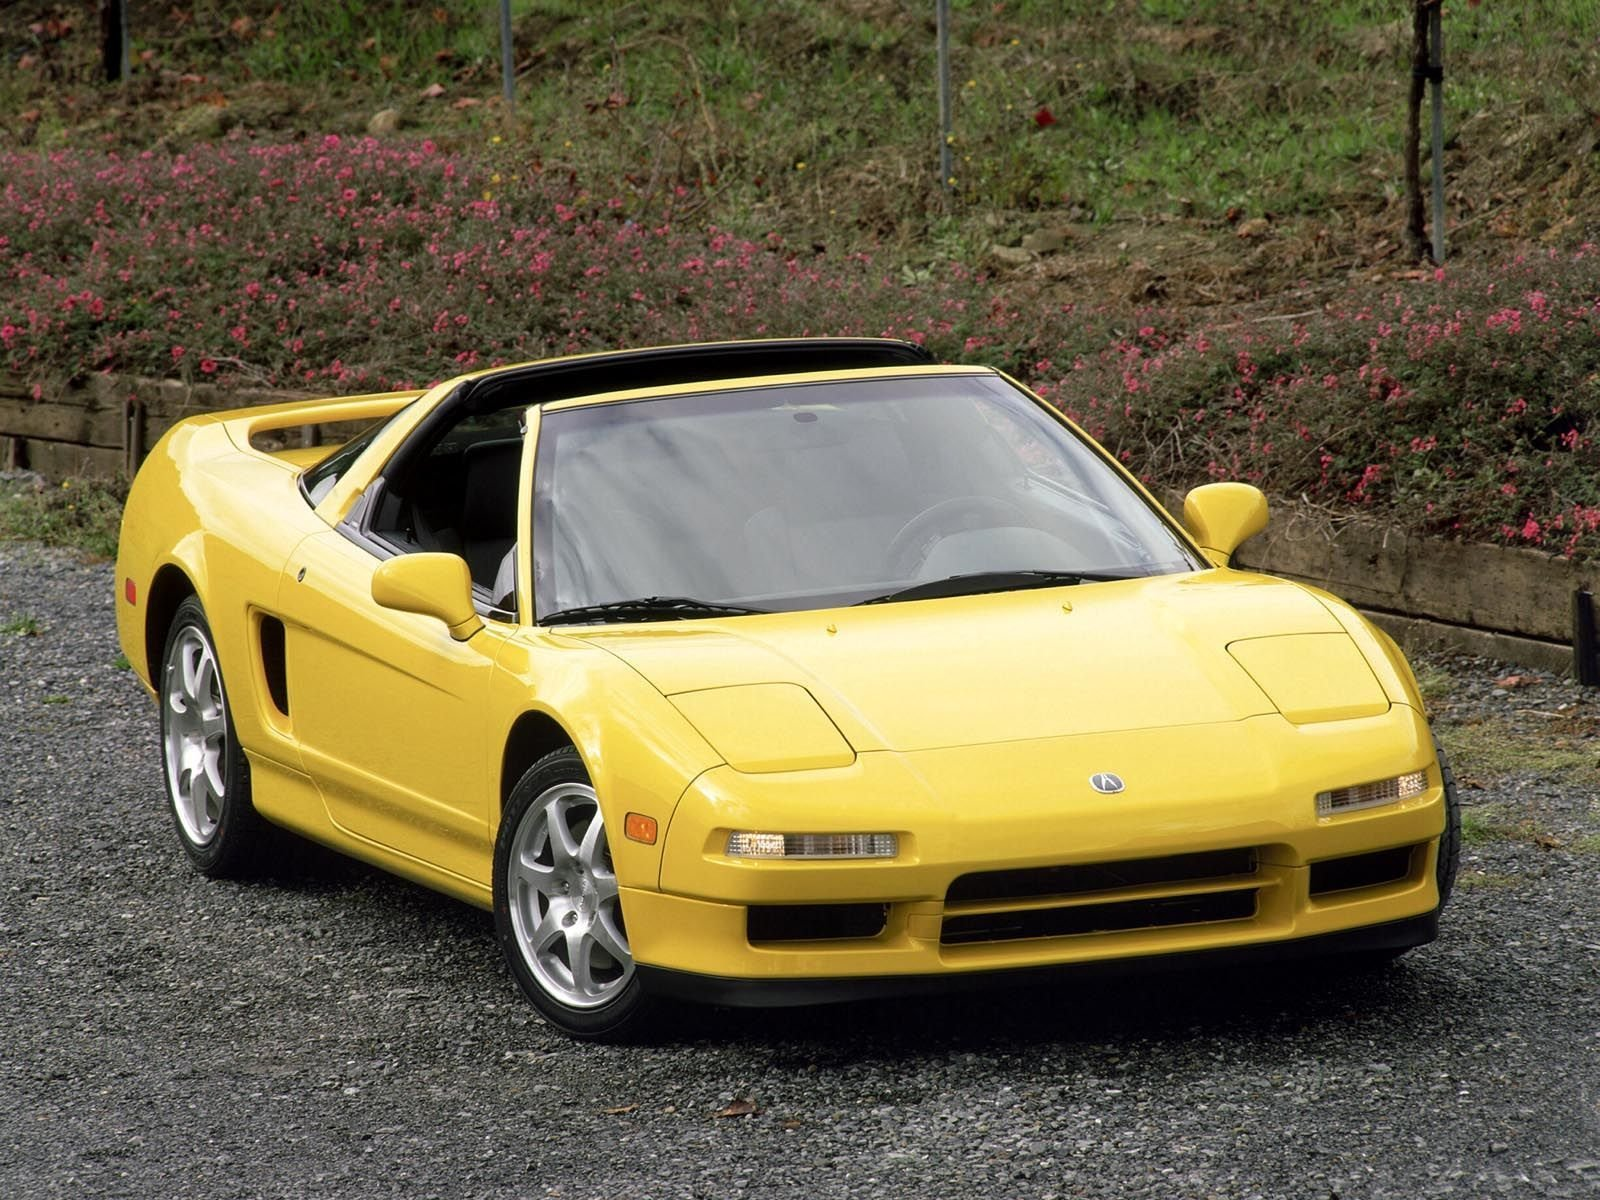 1990 2005 honda nsx picture 33101 car review top speed. Black Bedroom Furniture Sets. Home Design Ideas